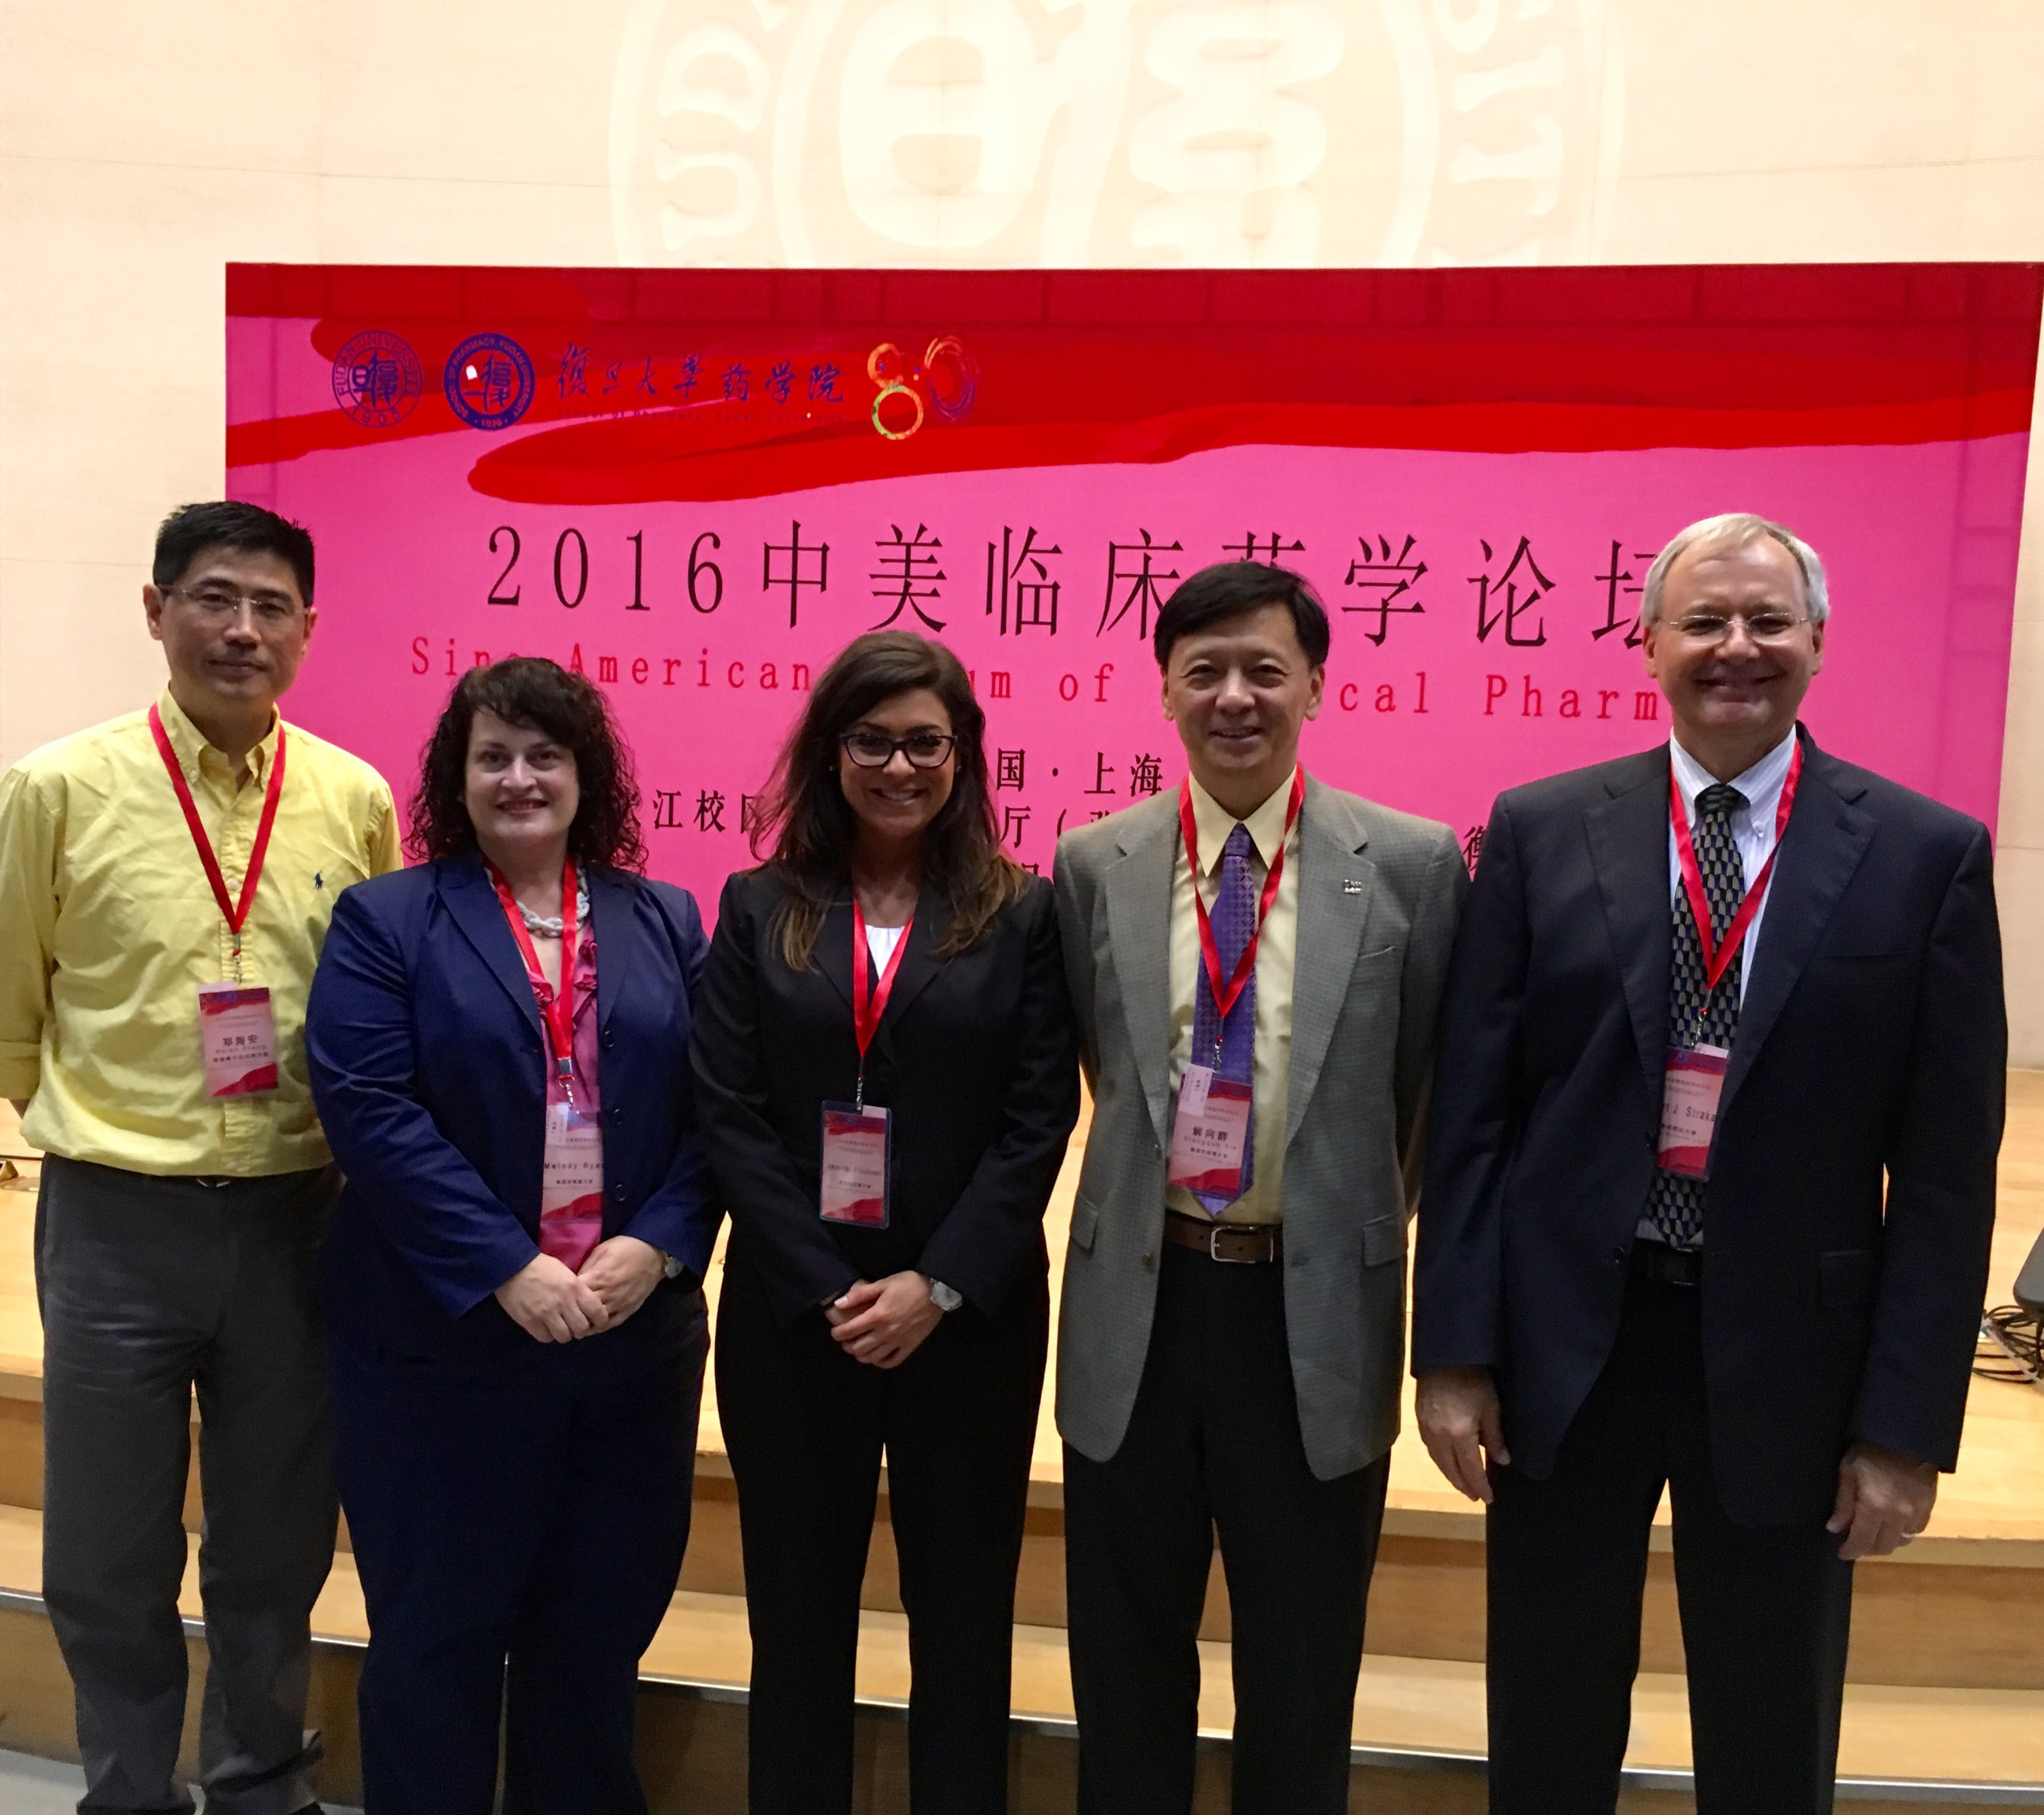 2016 Sino American Forum of Clinical Pharmacy participants